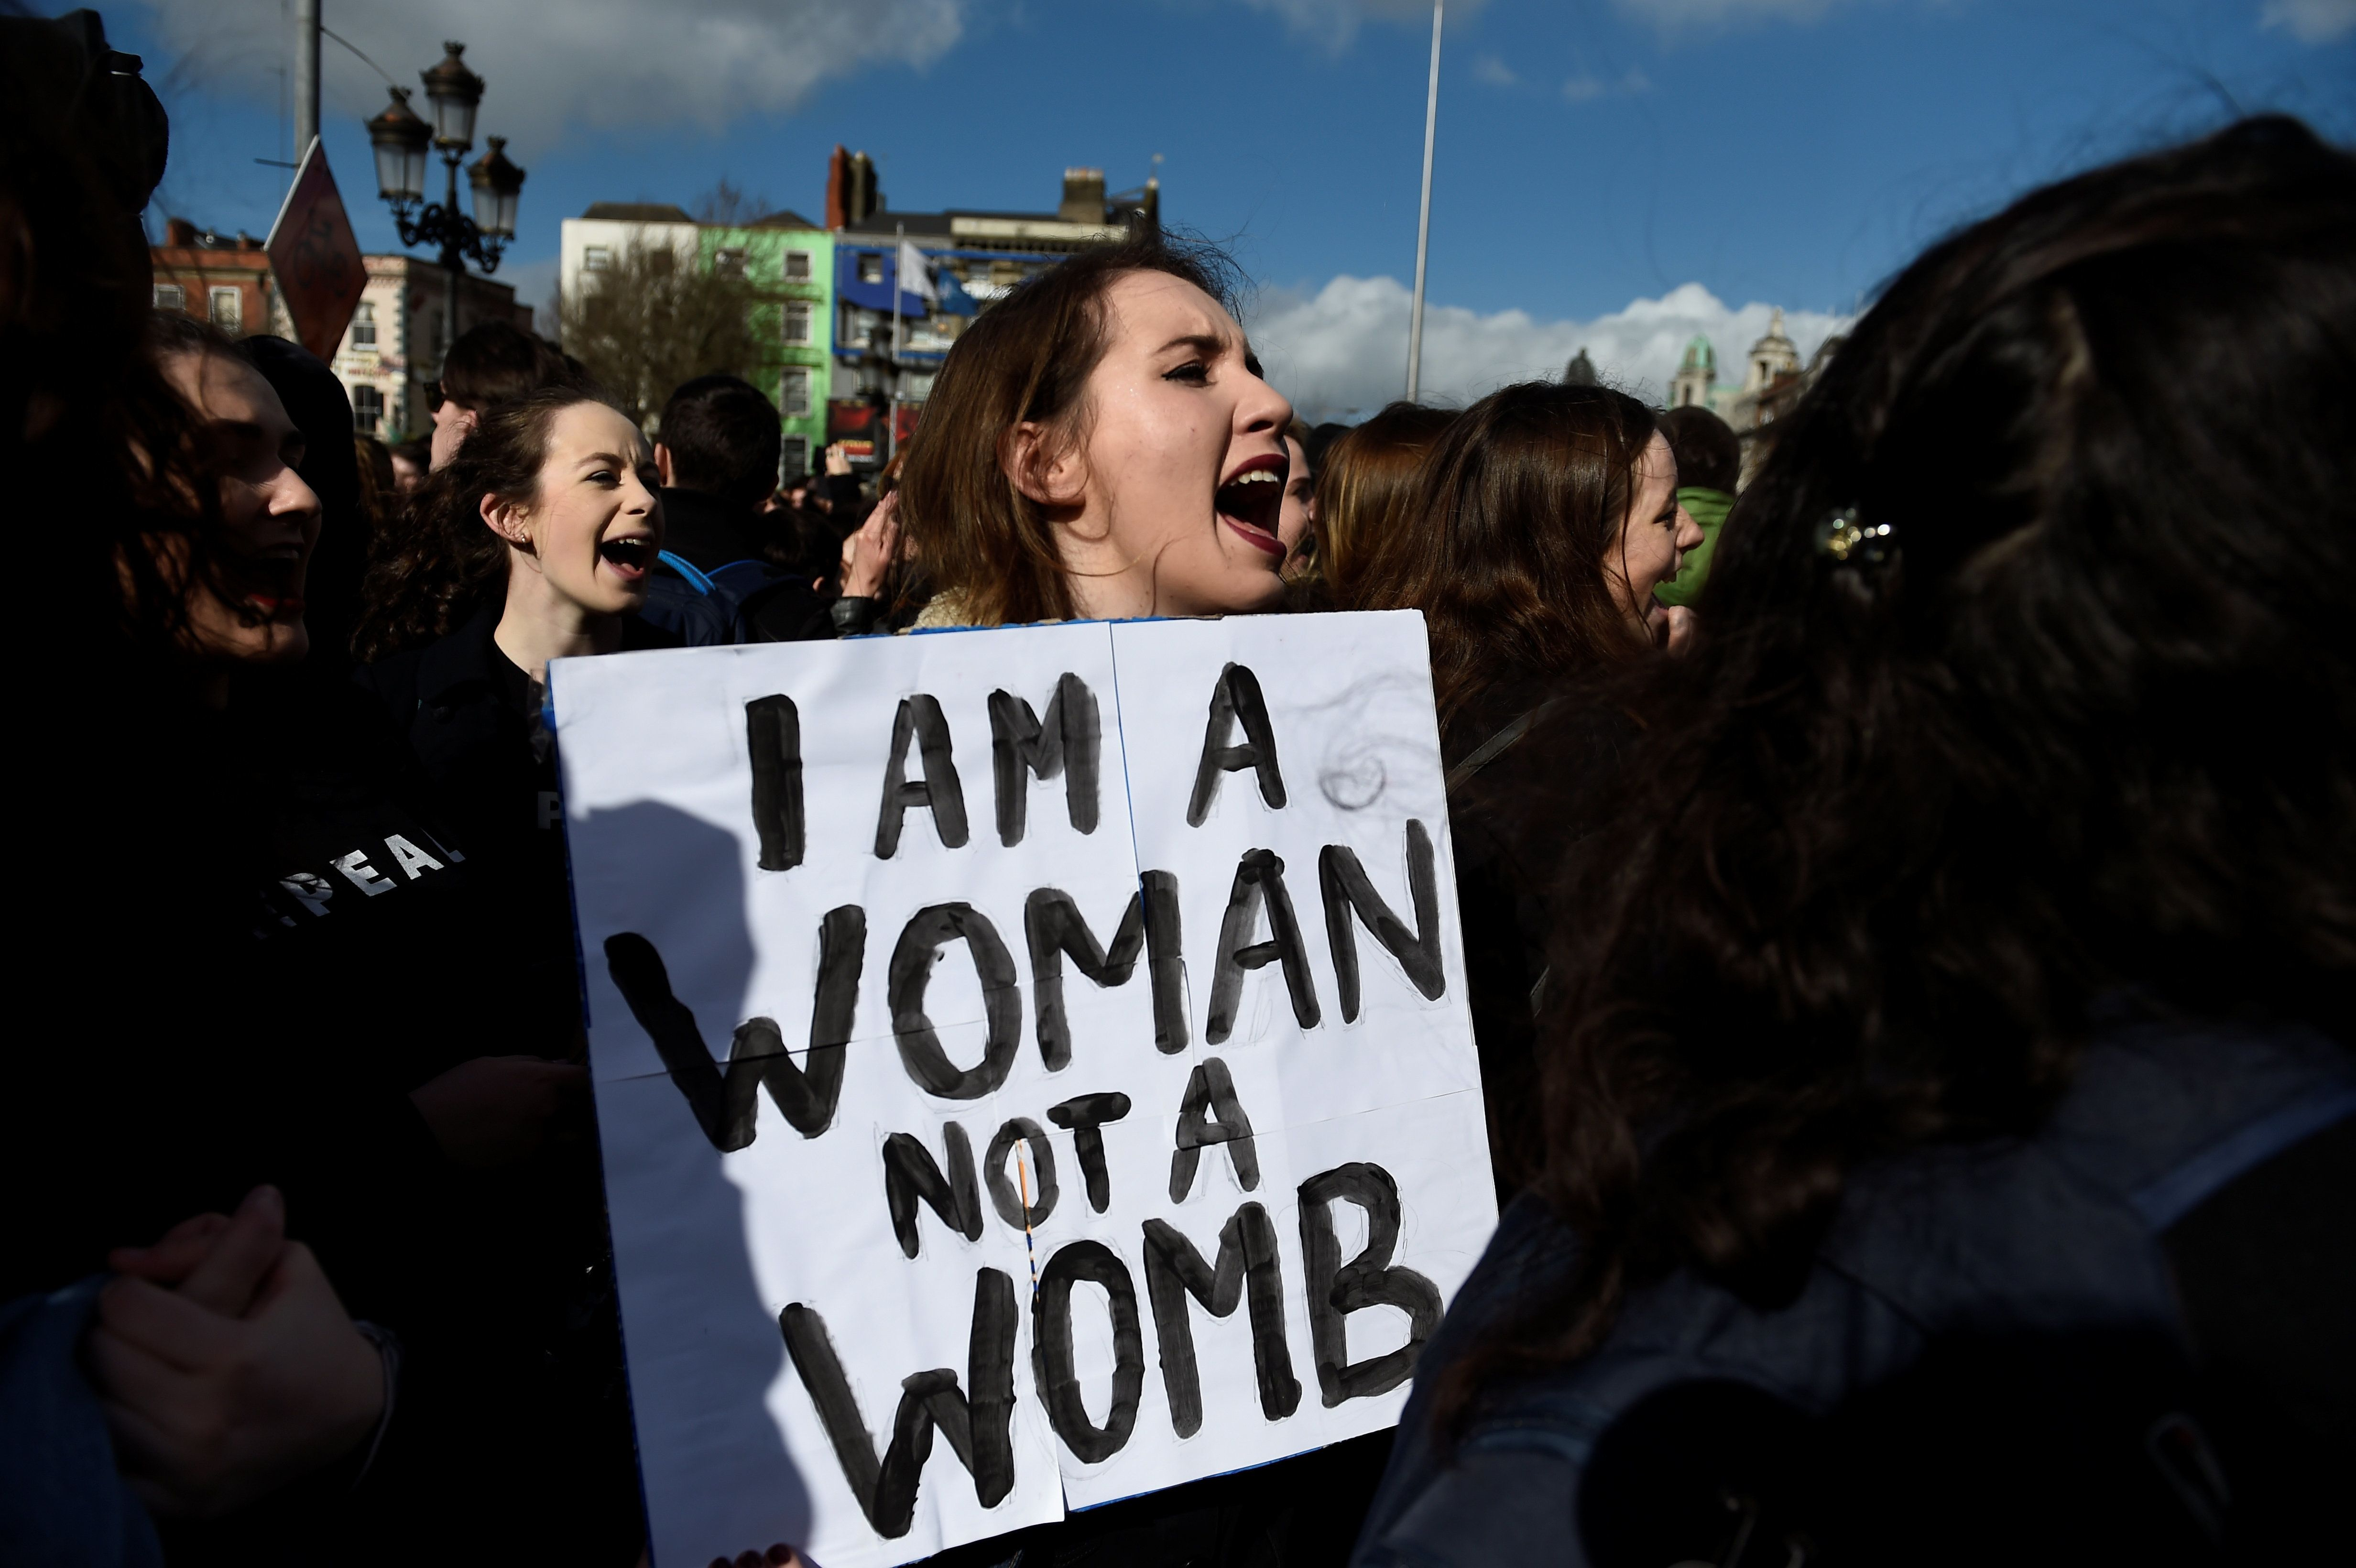 Campaigners stage a protest to demand more liberal abortion laws, in Dublin, Ireland March 8, 2017. REUTERS/Clodagh Kilcoyne